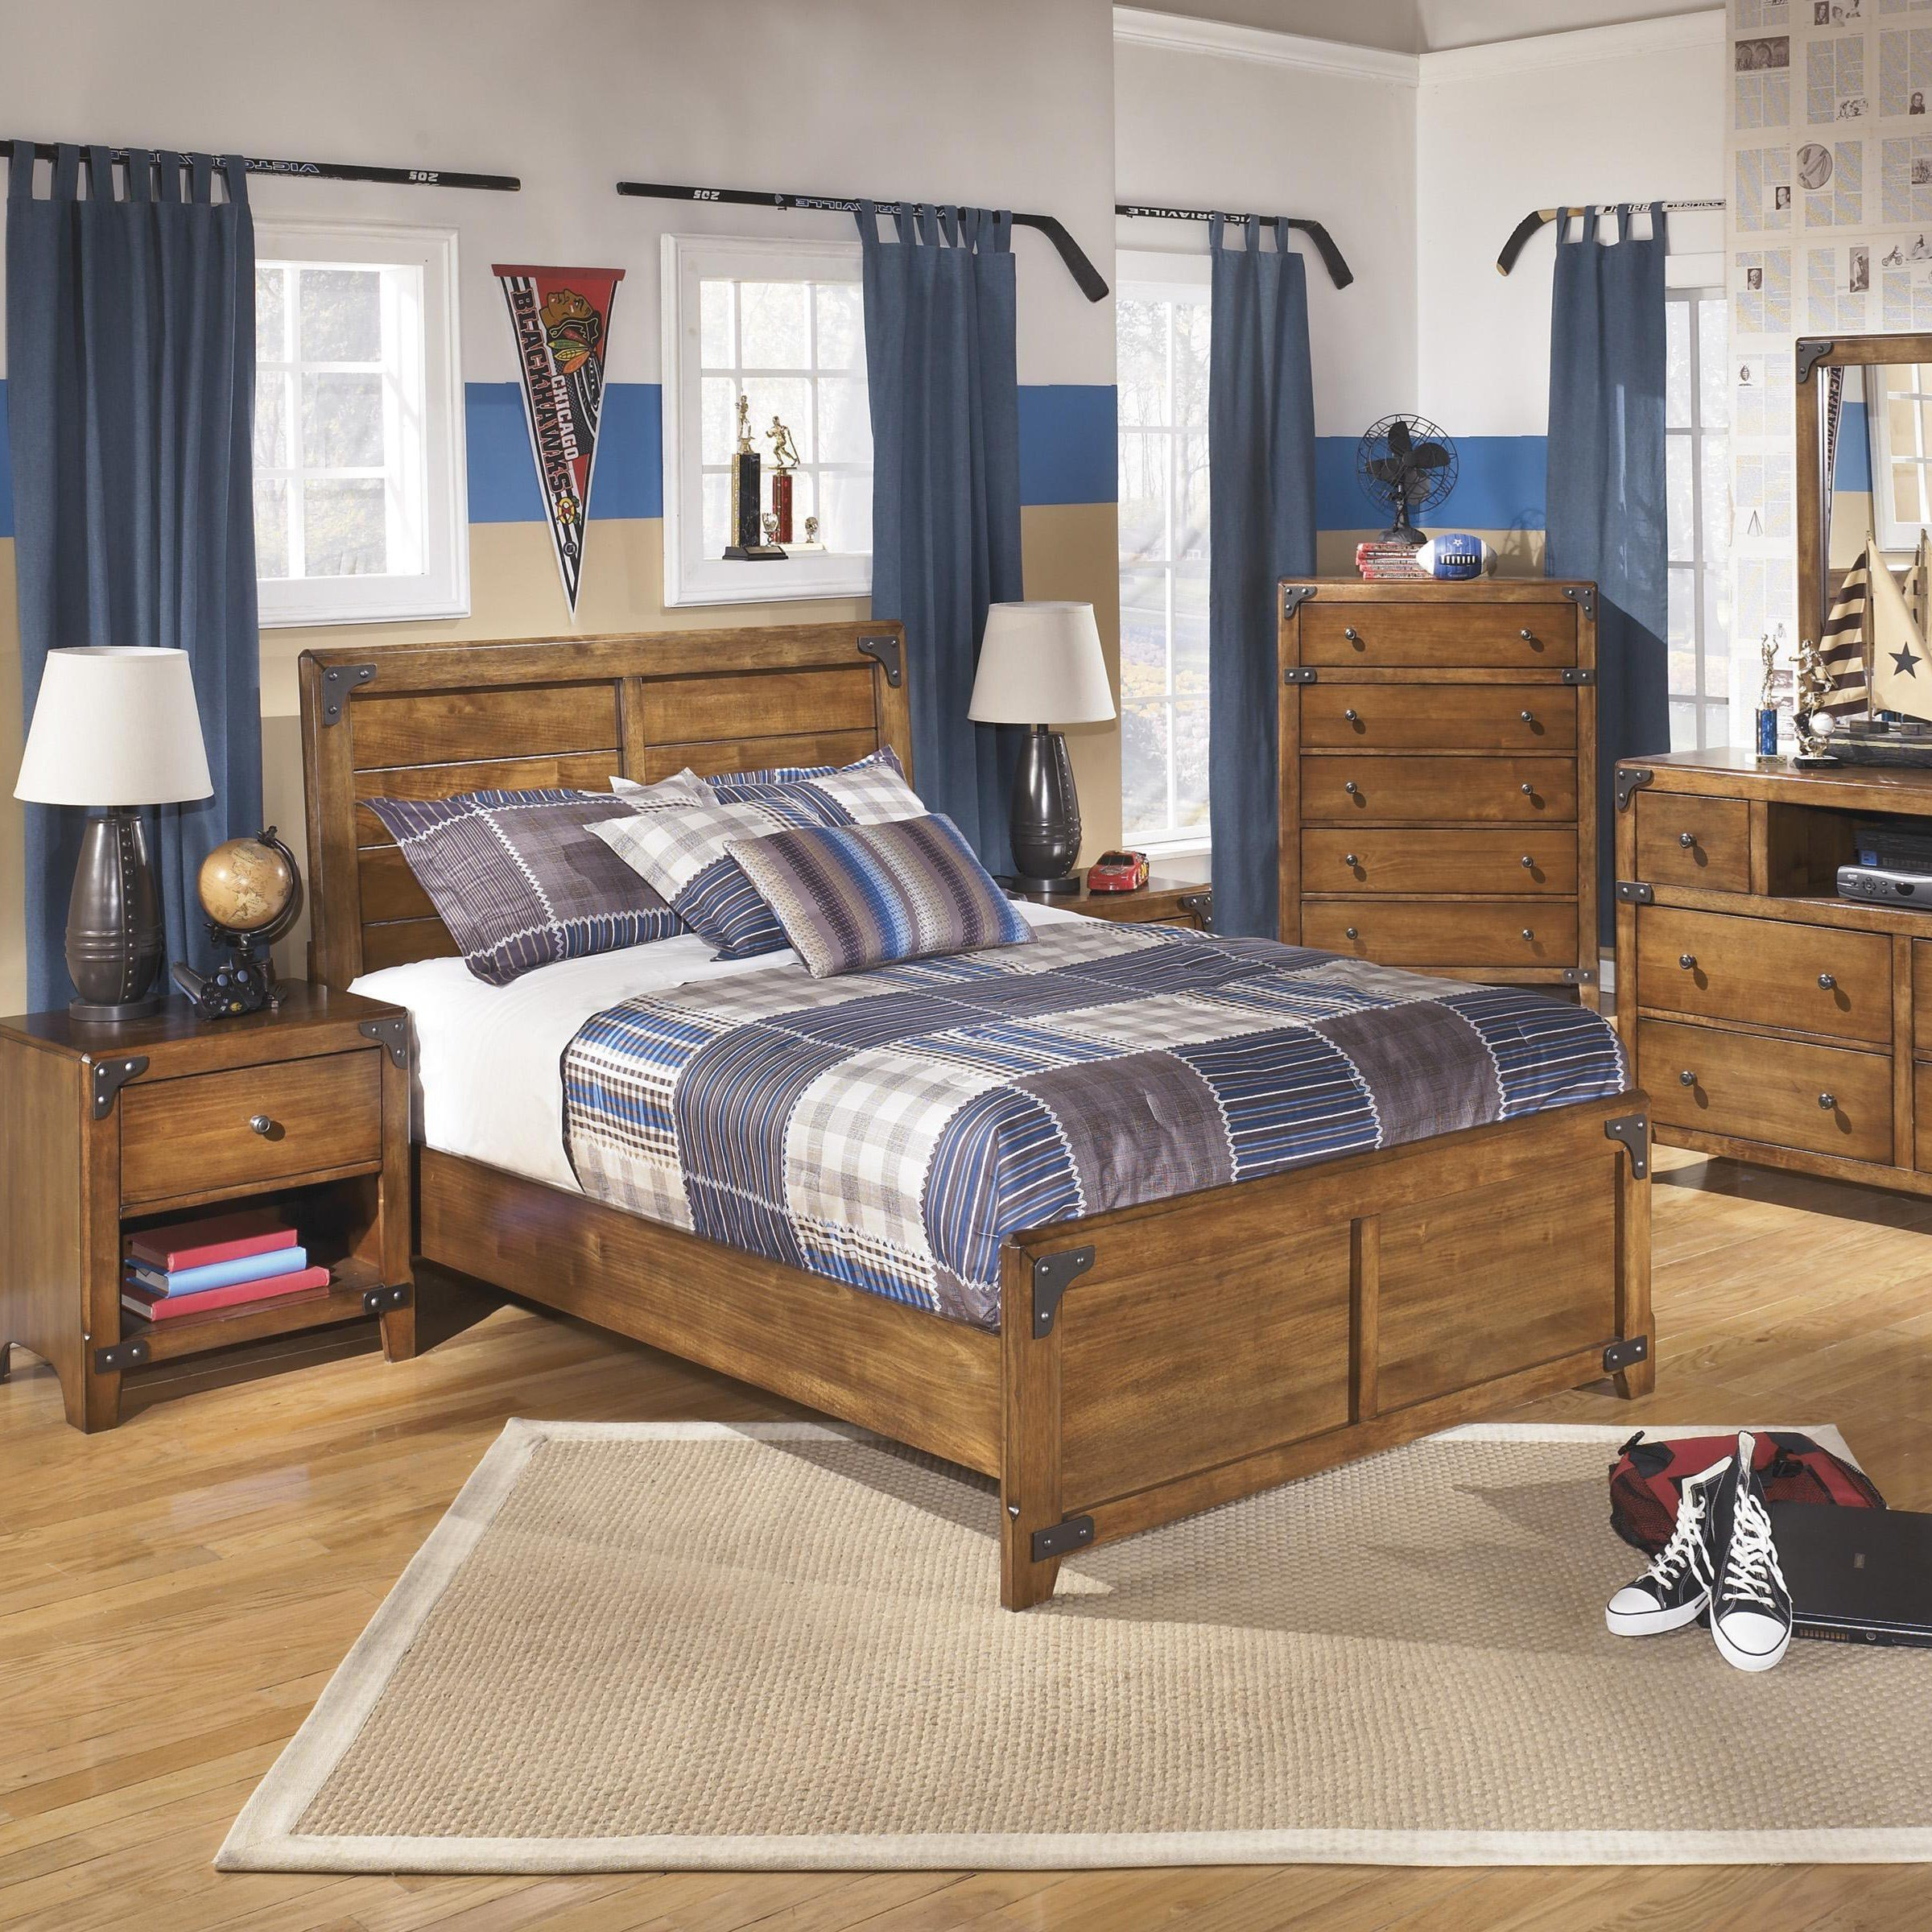 Best Kids Furniture Del Sol Furniture Phoenix Glendale Tempe Scottsdale Arizona Furniture Store With Pictures